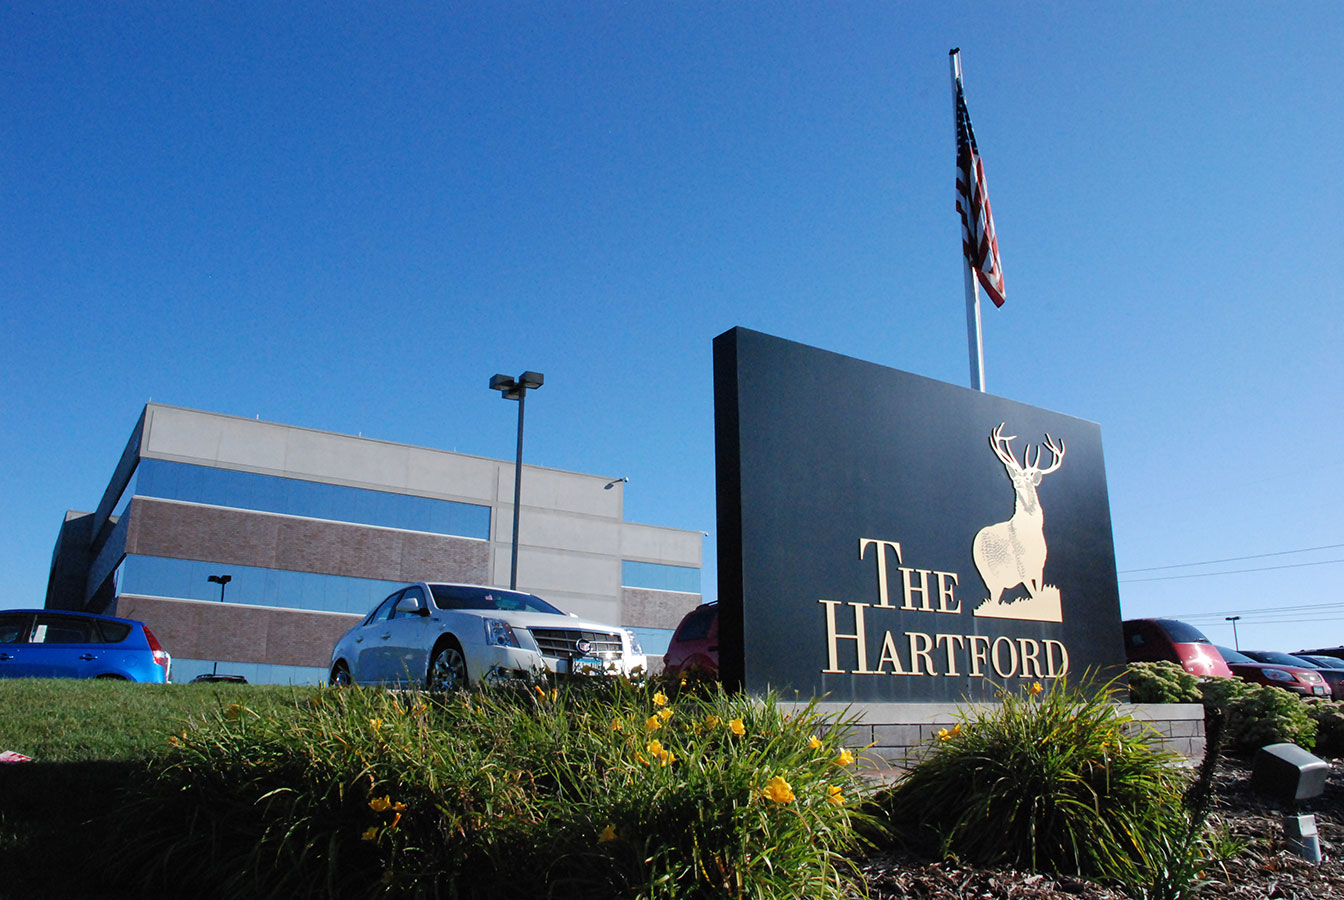 The Hartford Picture